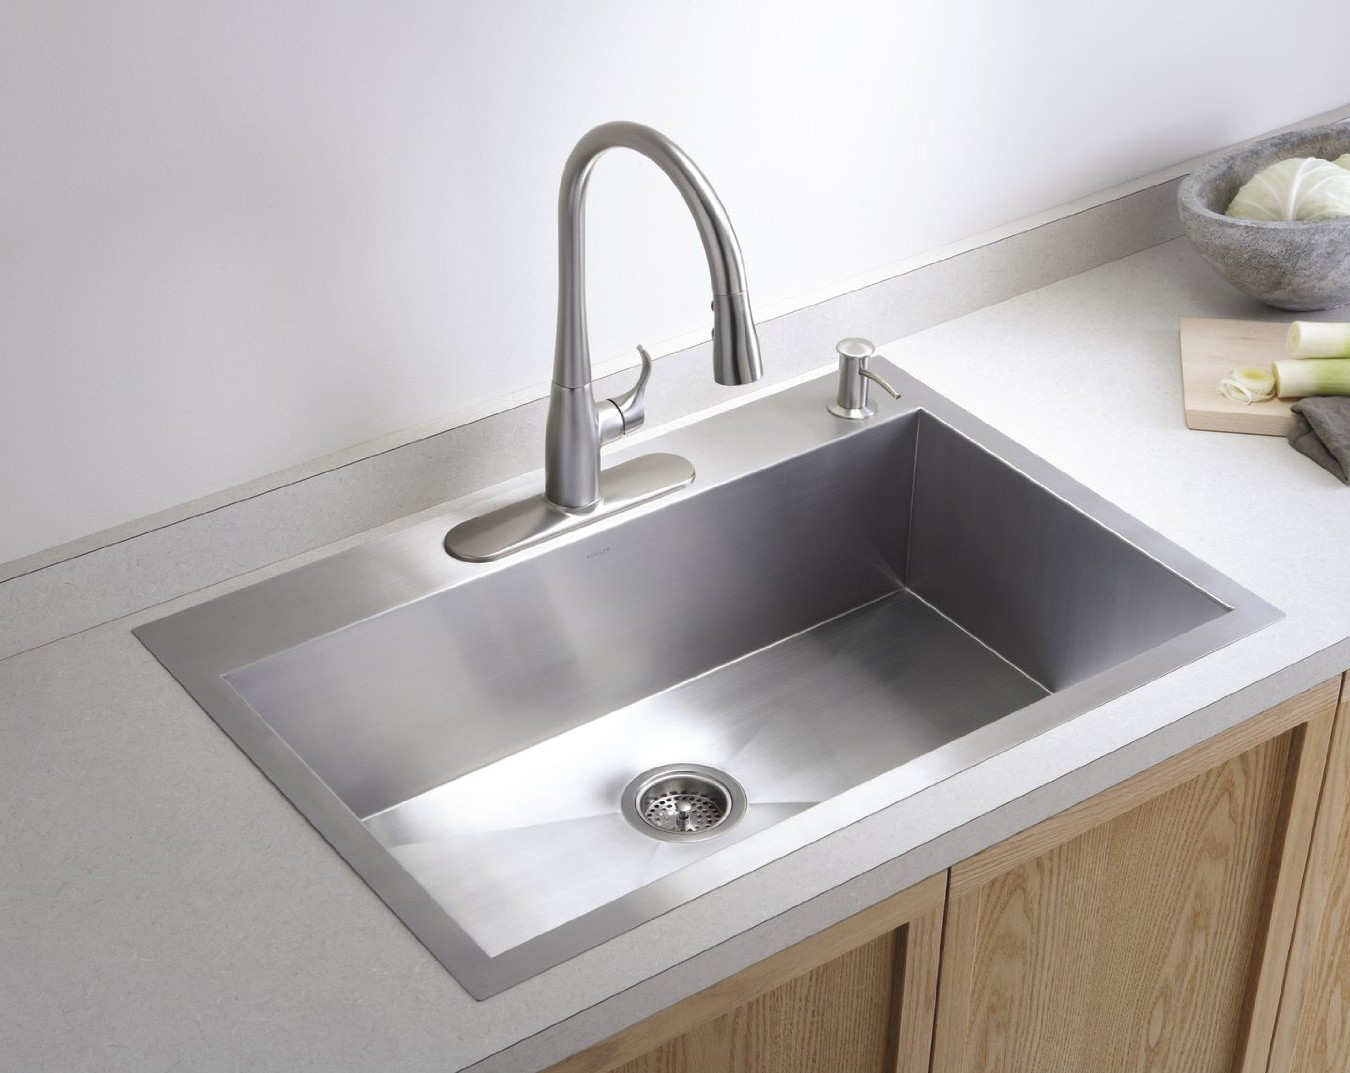 Marvelous The minimalist Vault drop in sink has replaced two highly styled stainless predecessors